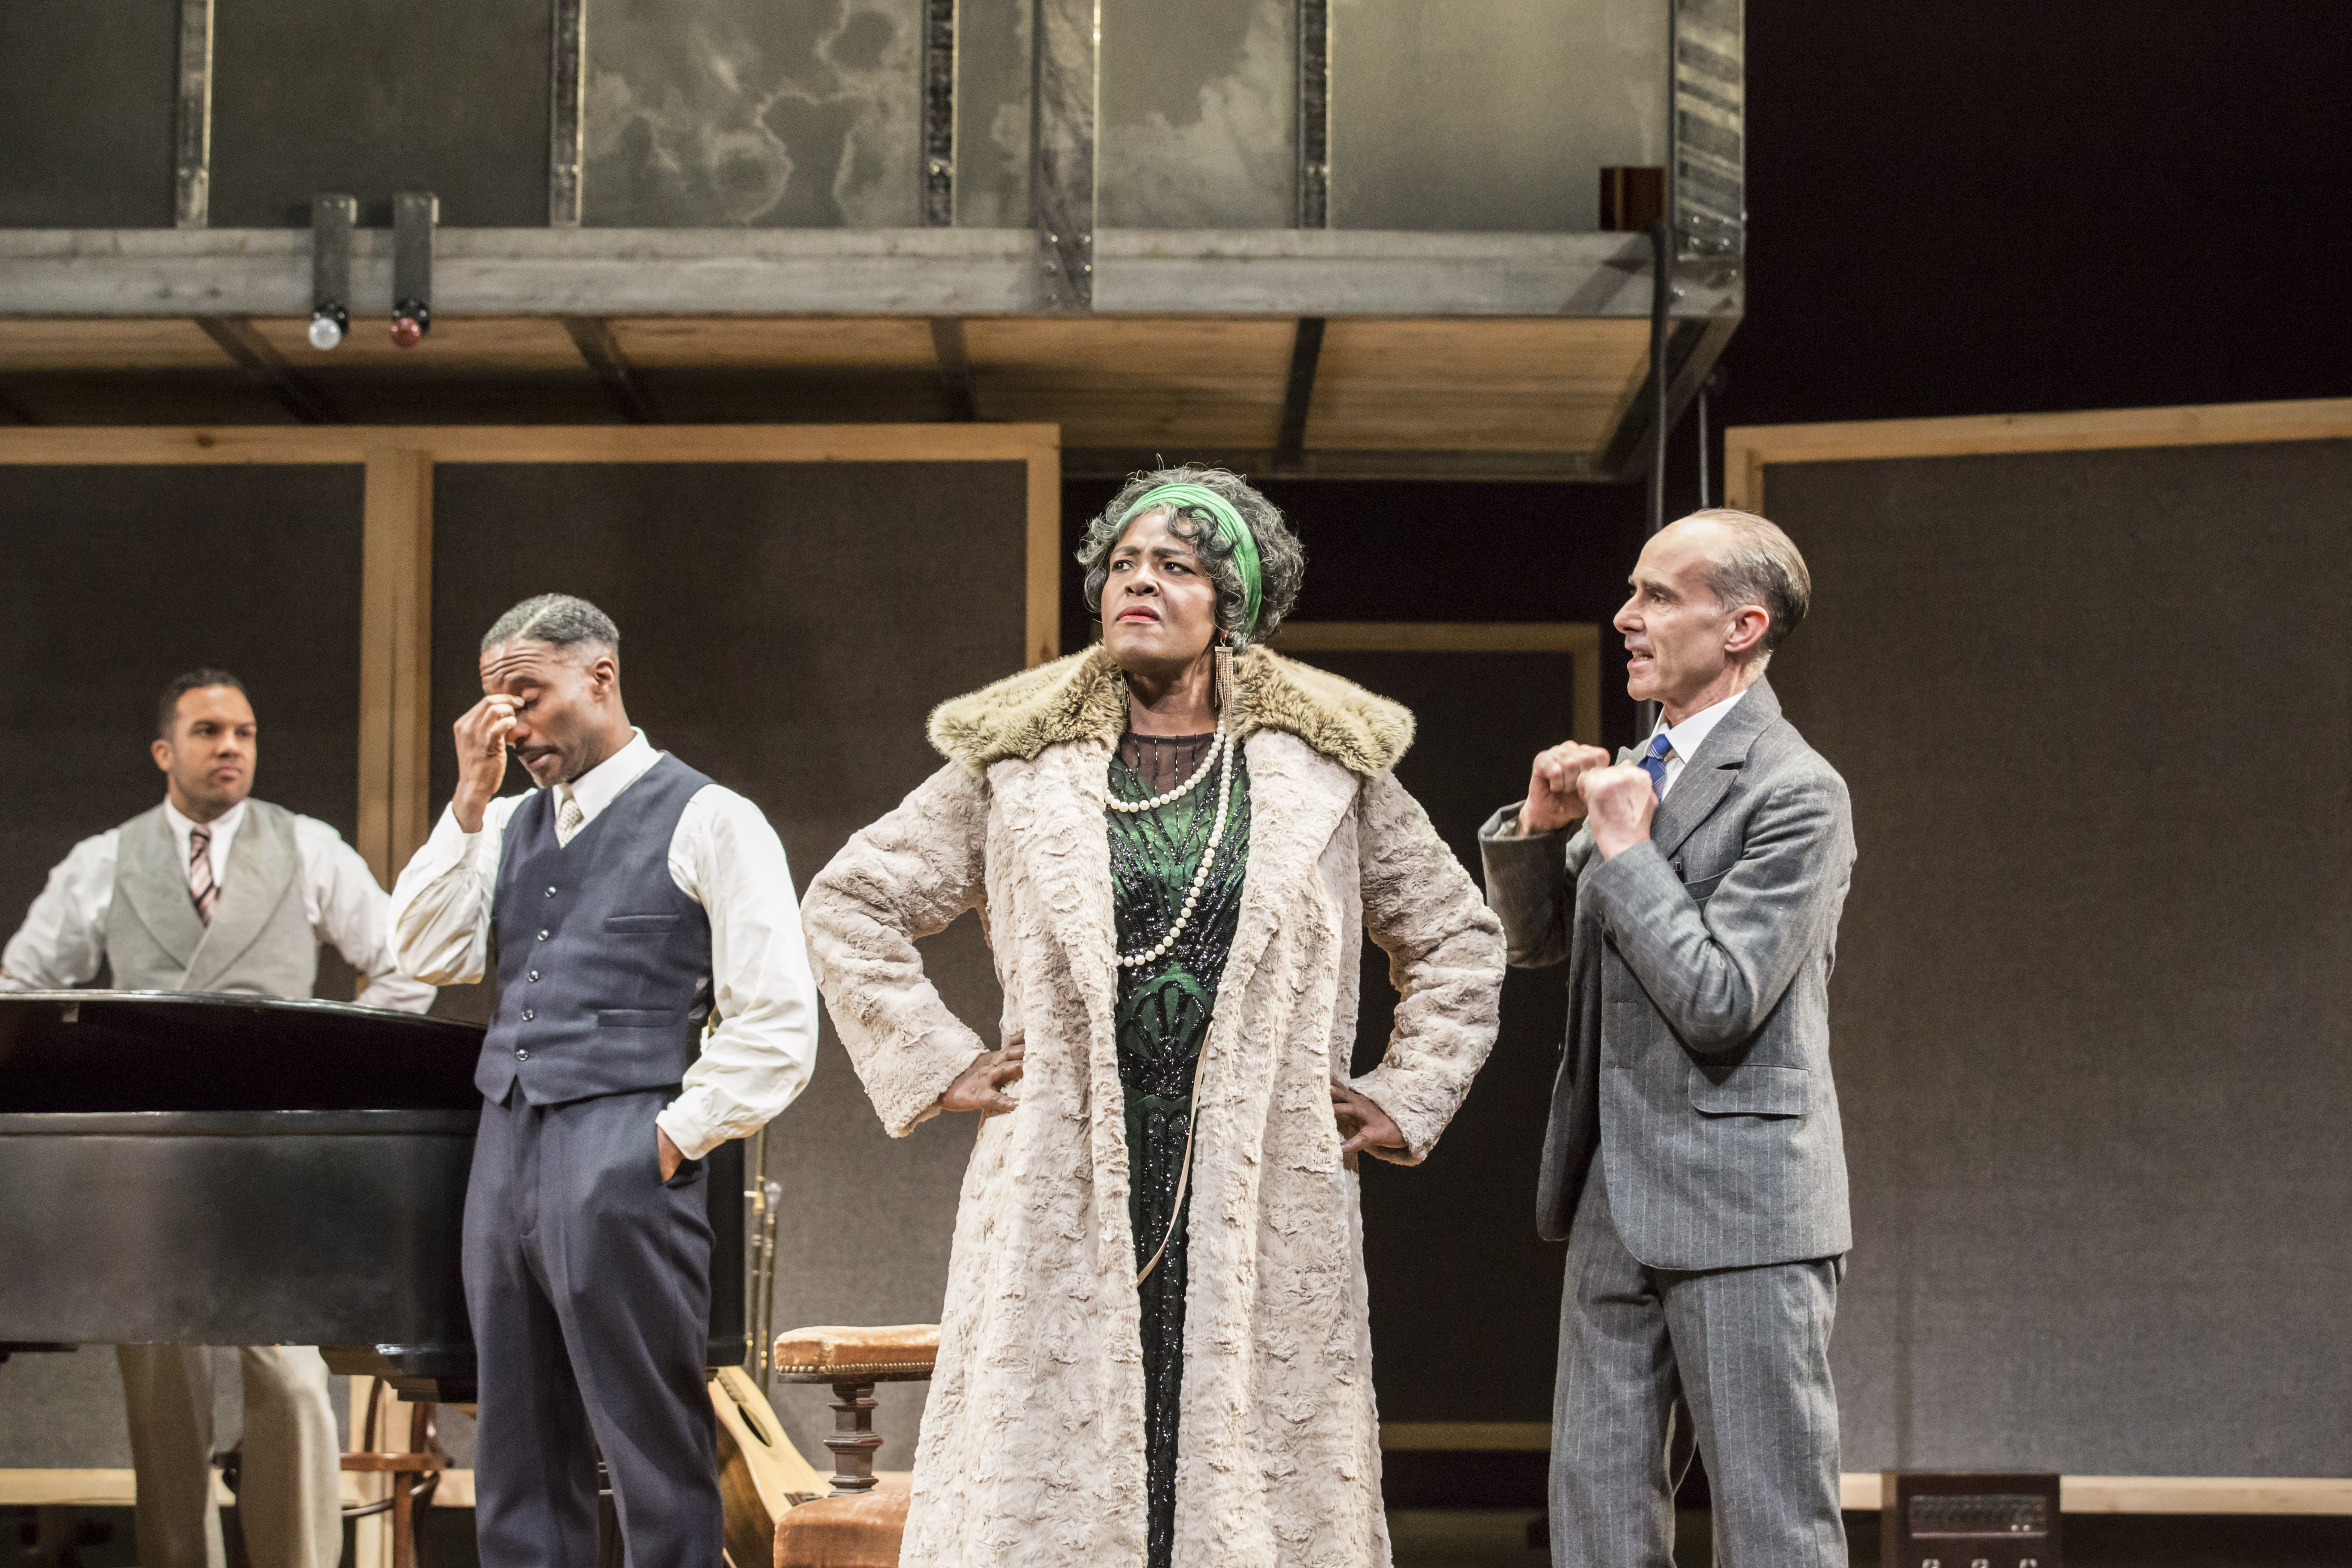 MA RAINEY'S BLACK BOTTOM by Wilson, , Writer - August Wilson, Director - Dominic Cooke, Designer - Ultz, Lighting - Charles Balfour, The National Theatre, 2015, Credit: Johan Persson/